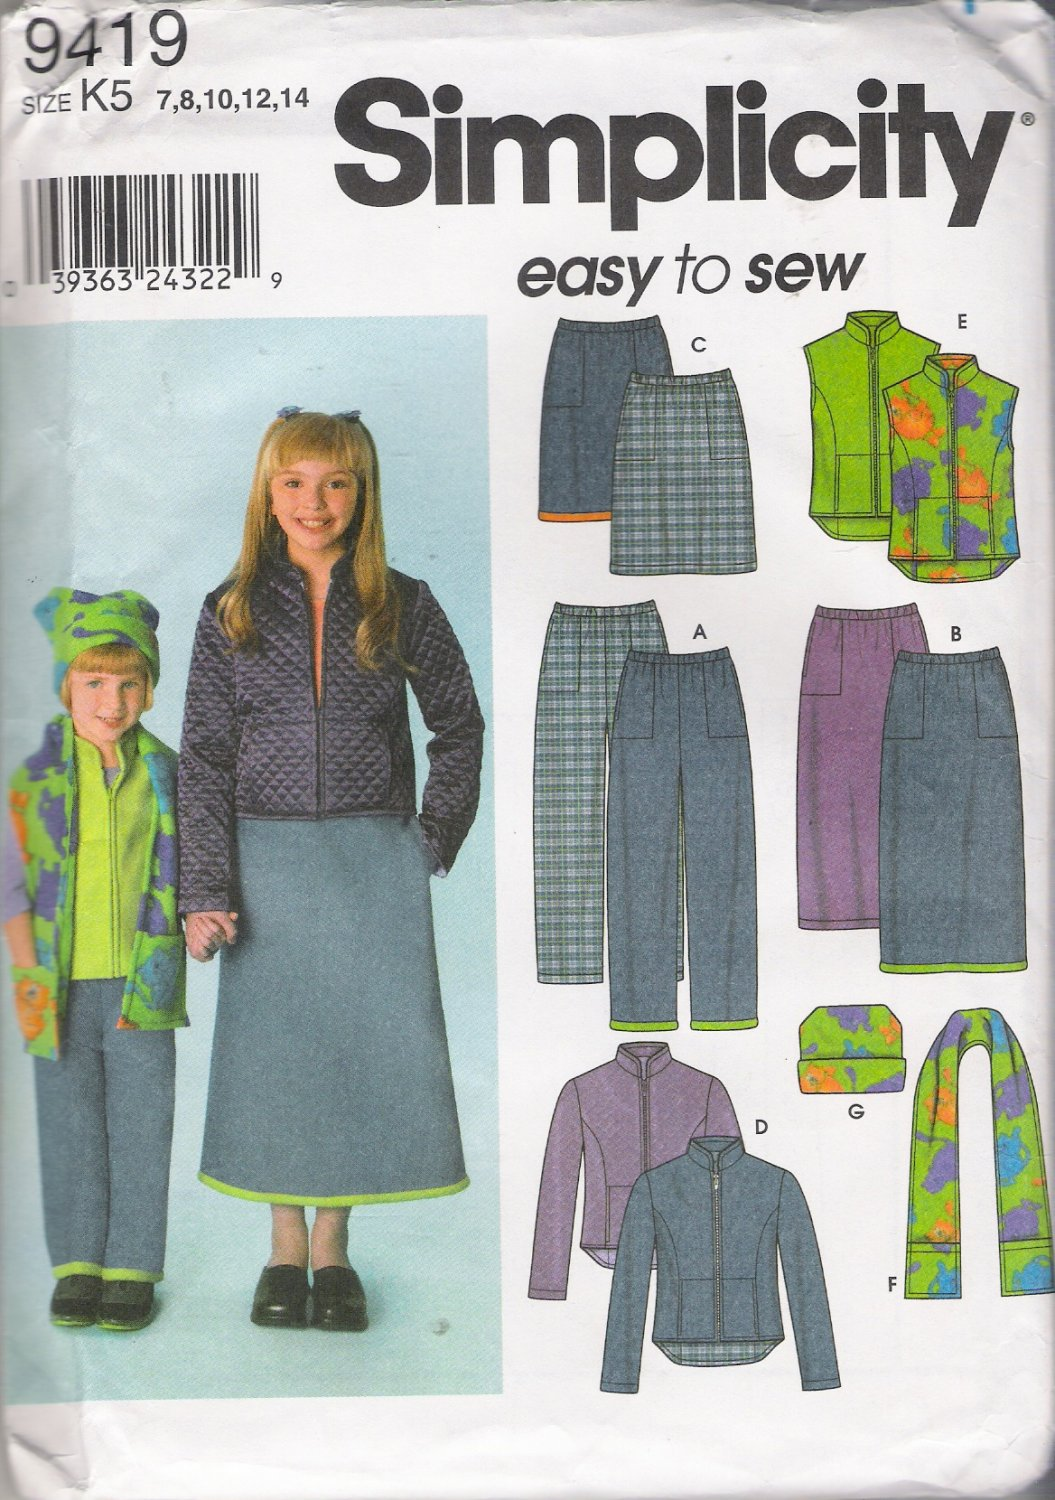 Child's & Girls' Pants Skirt Jacket Vest Scarf Hat Sewing Pattern Size 7-14 Simplicity 9419 UNCUT